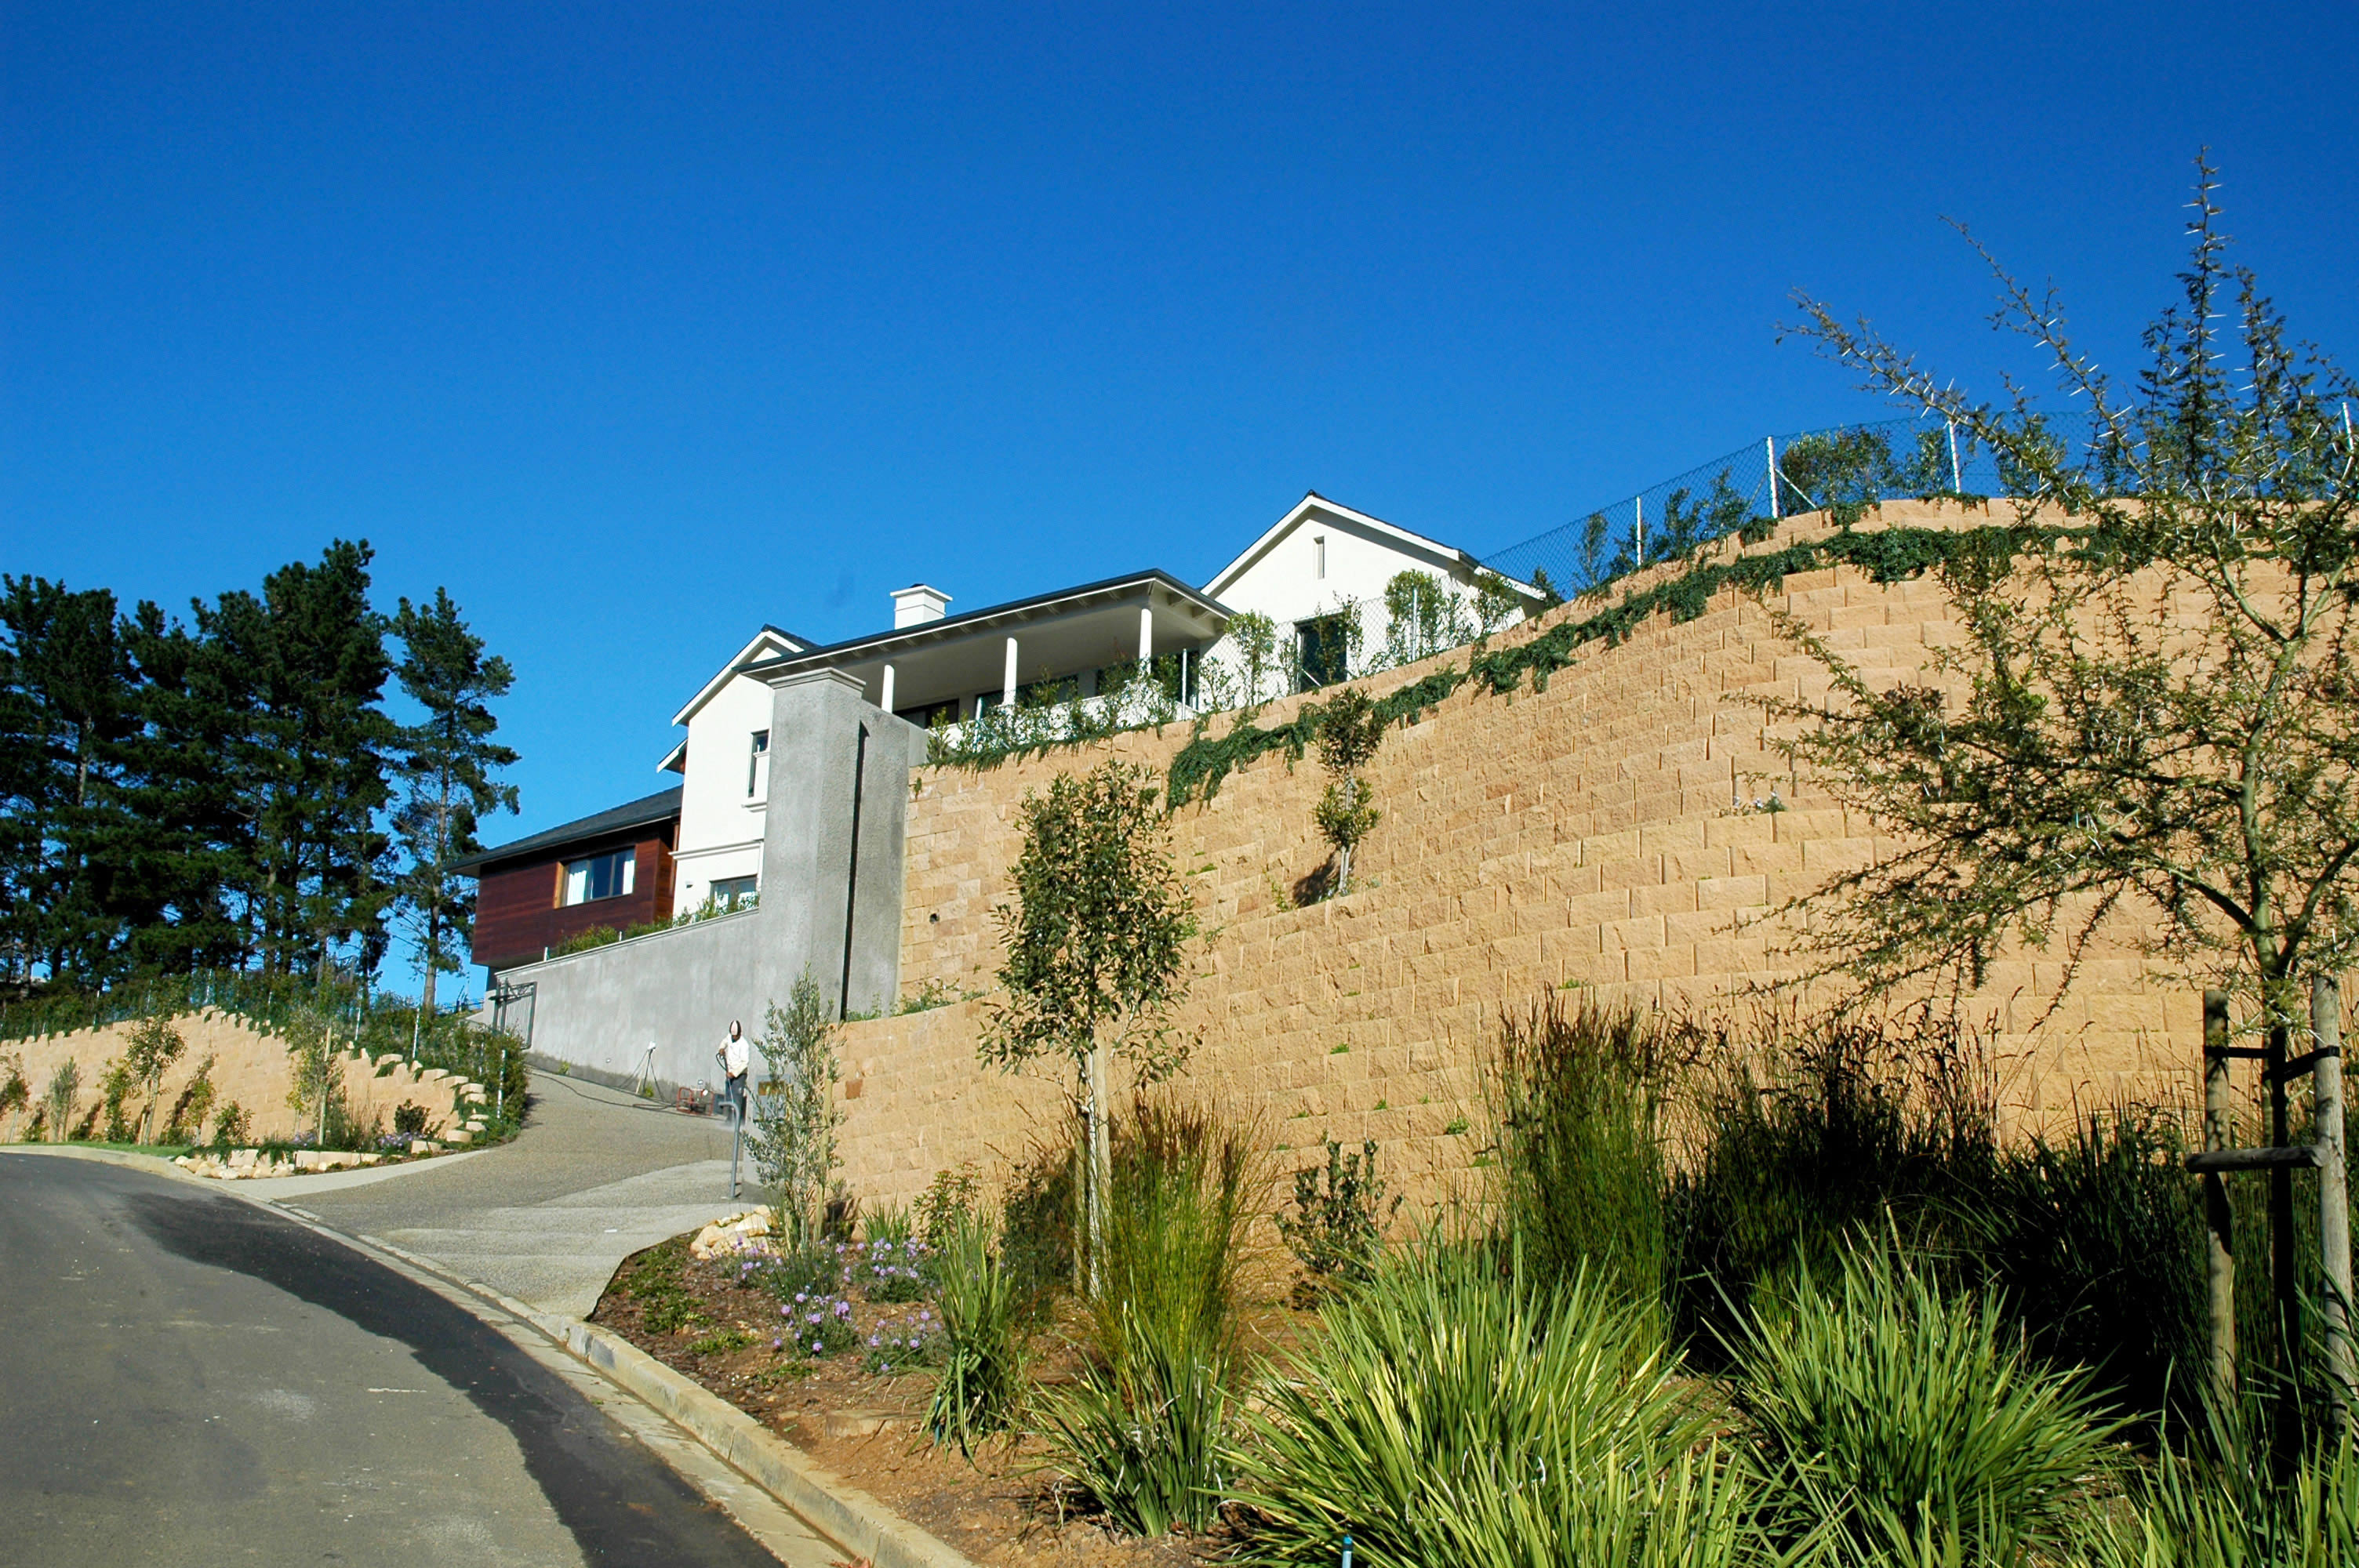 Overall, the completed retaining wall shows a high-quality ability to combine function with form: